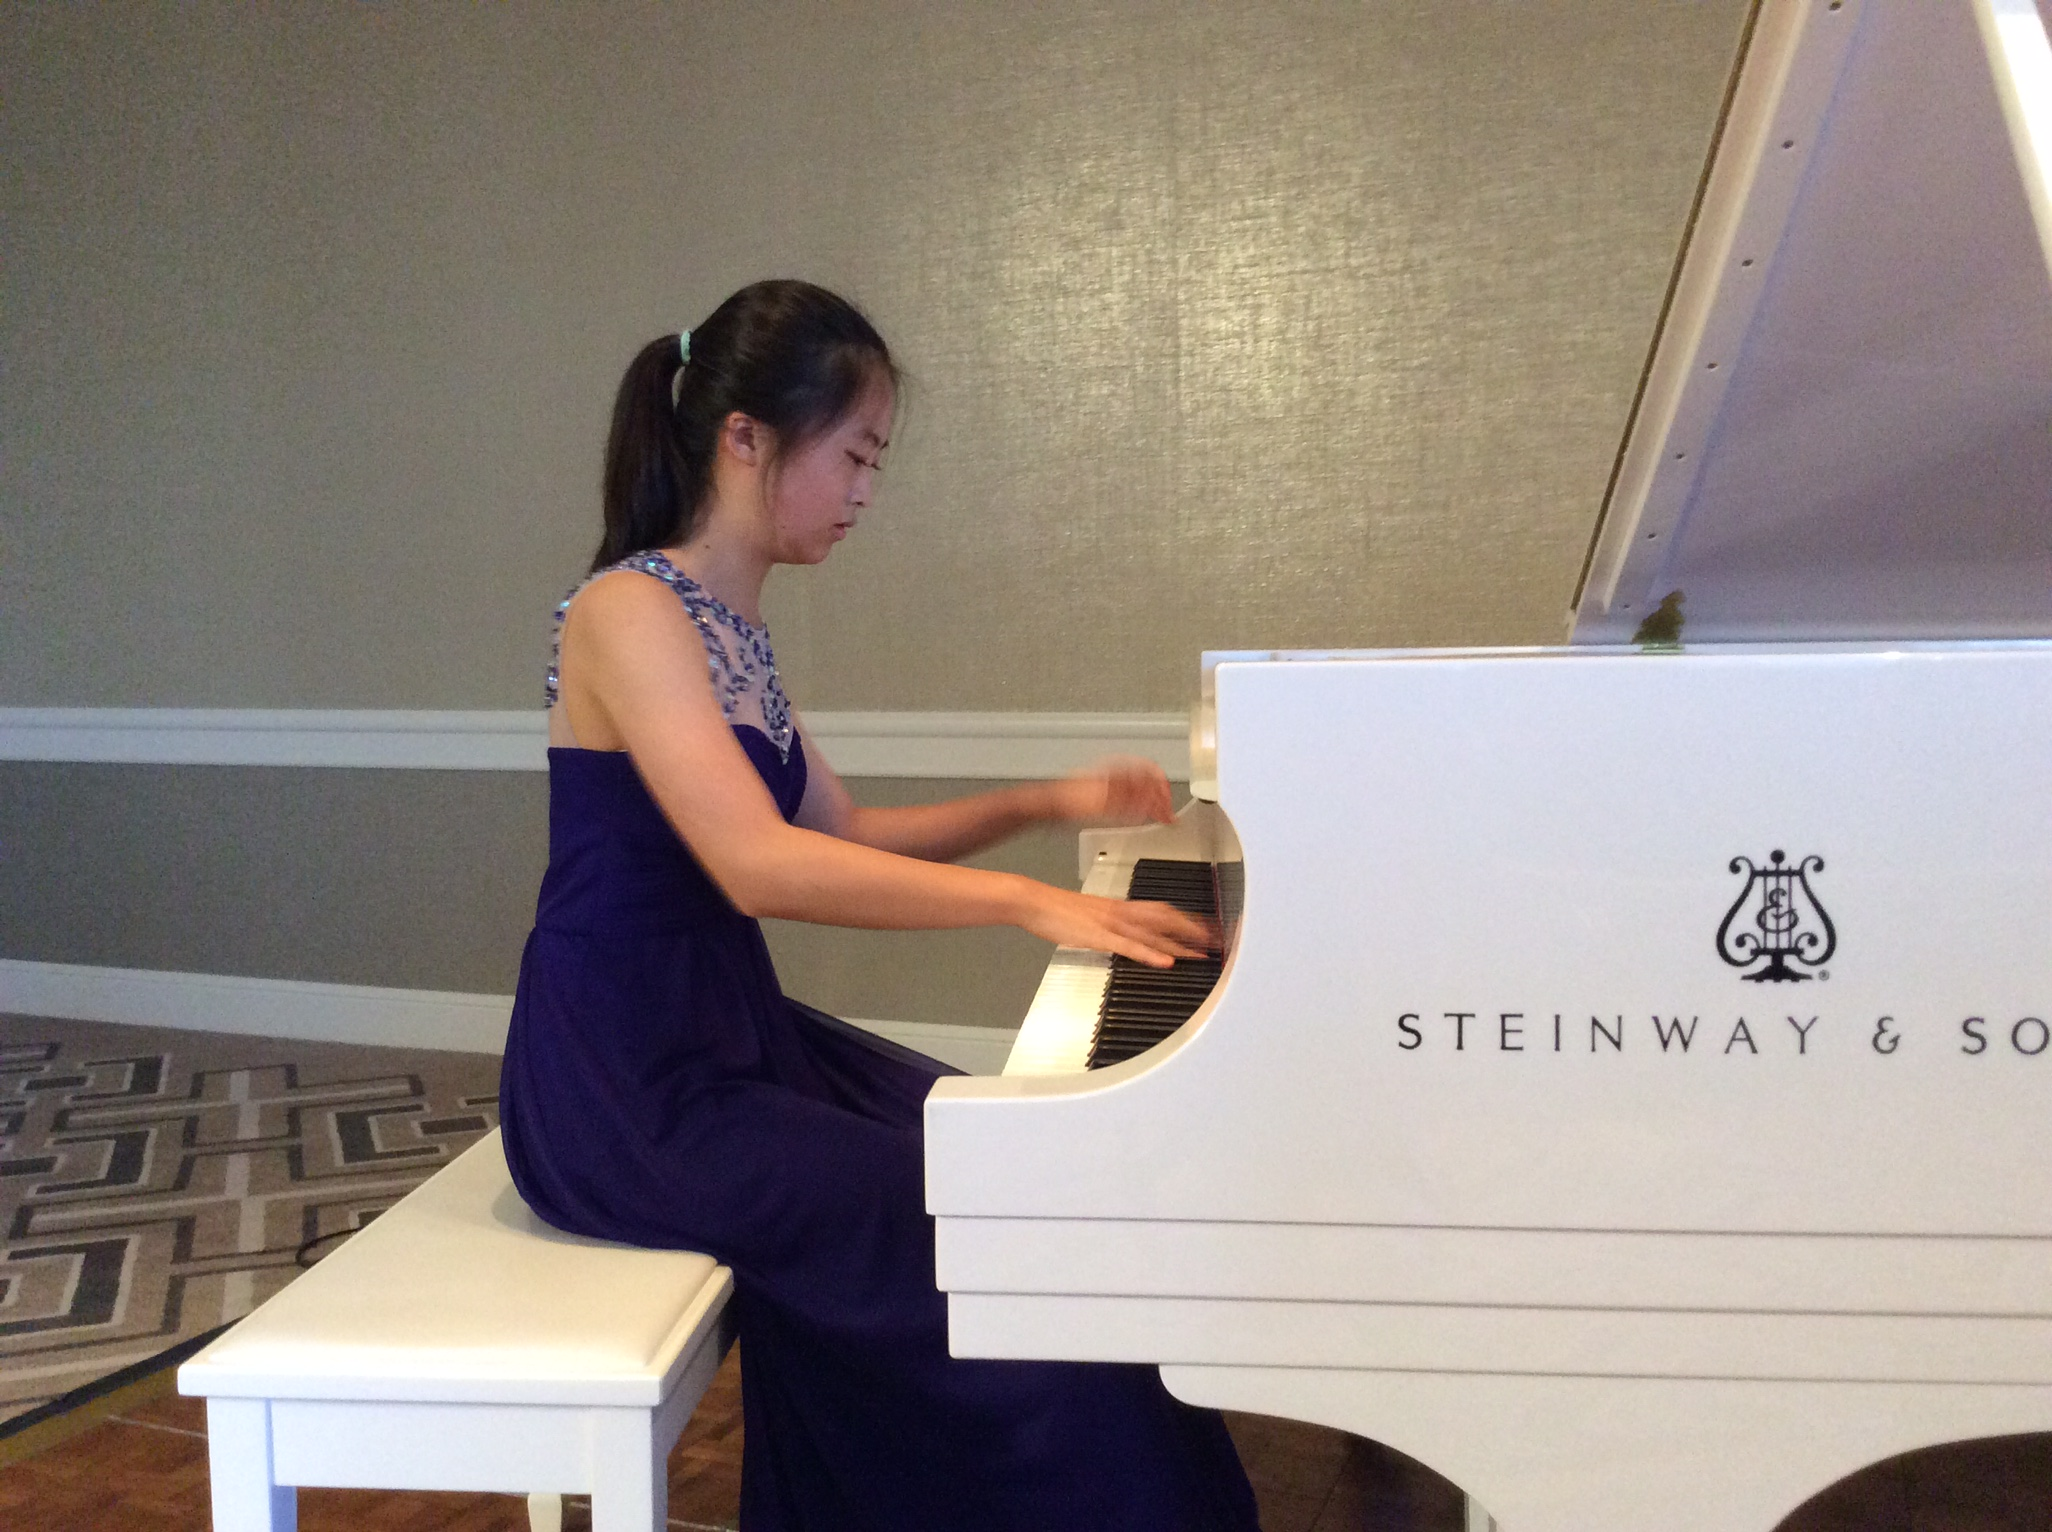 Minju Kim practices for hours on end, working toward her next achievement. She has received much acclaim for her talent, including playing at Carnegie Hall in New York City.